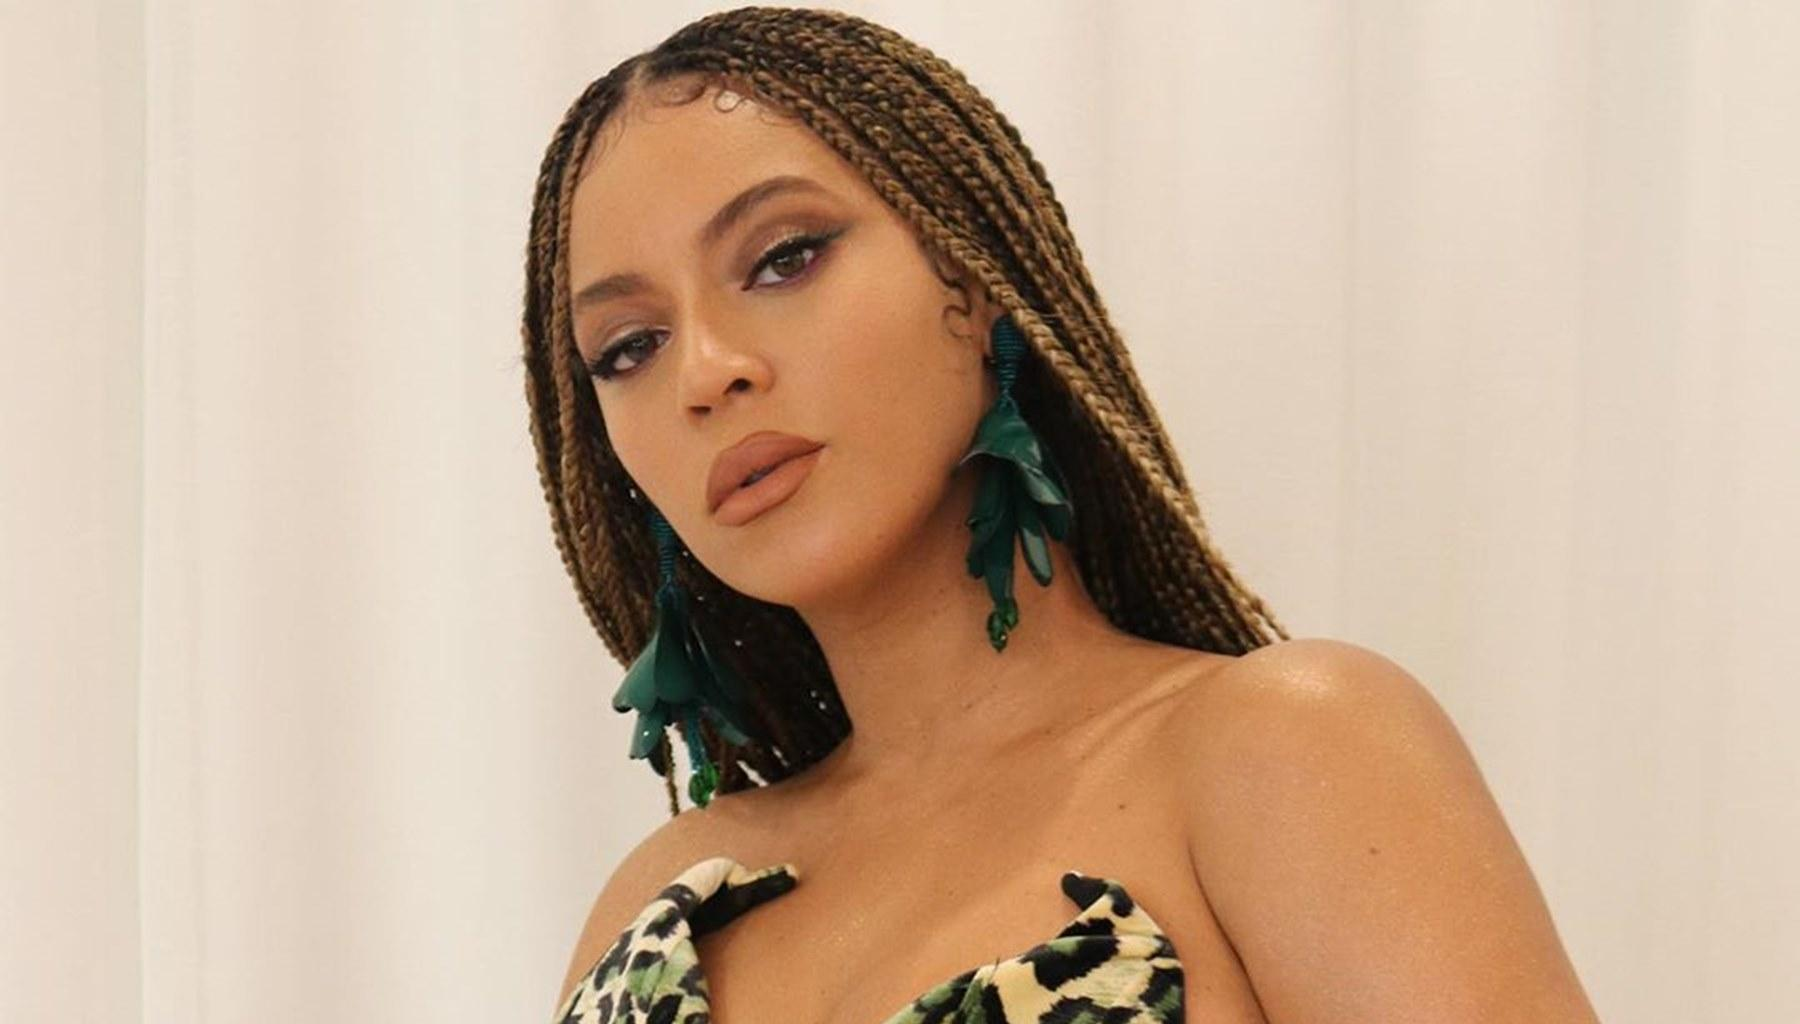 Beyonce Makes Sure That Her Toned Figure Is Center Of Attention At Christmas Party -- Photos Confirm That Jay-Z Is A Lucky Man